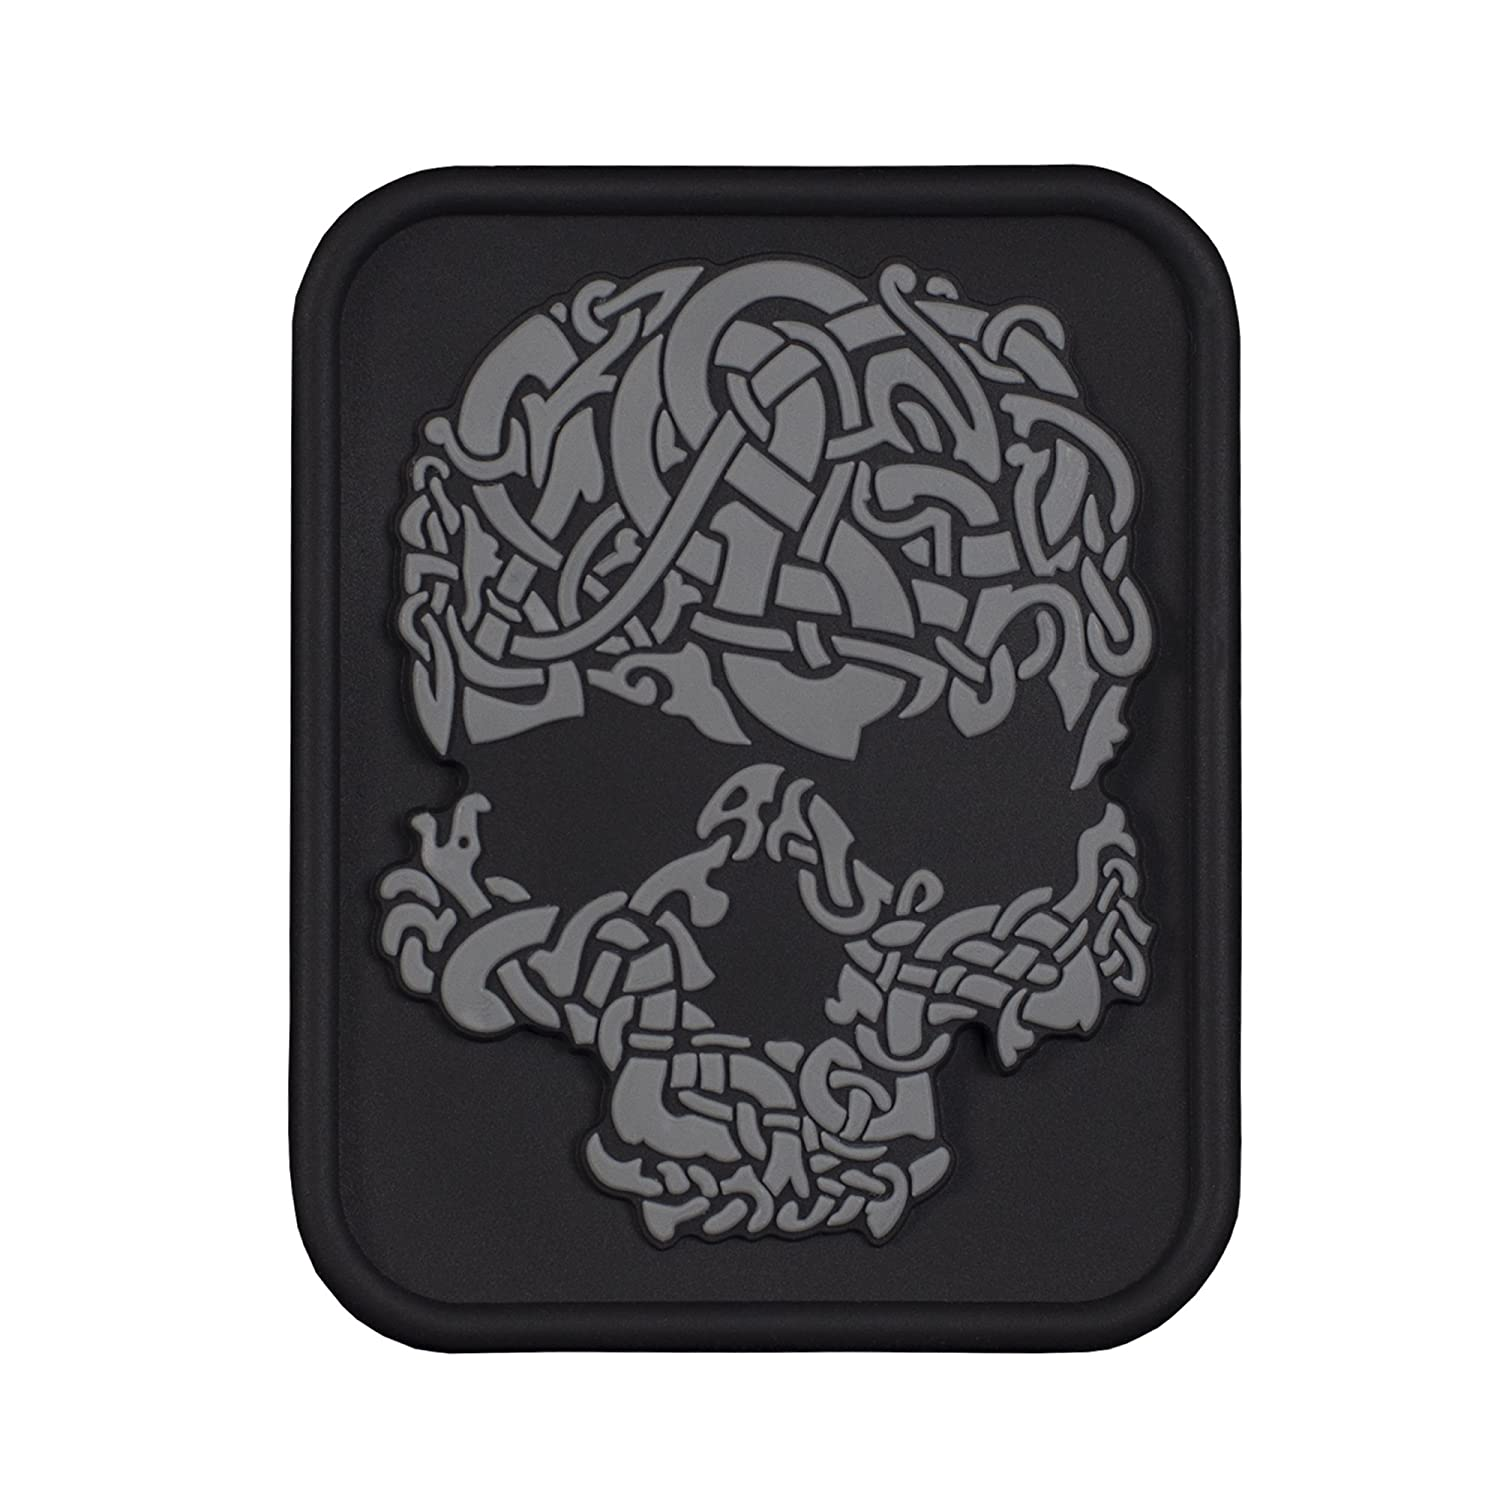 7ea81c375 Details about Viking Skull 3D Military Tactical Patch 3